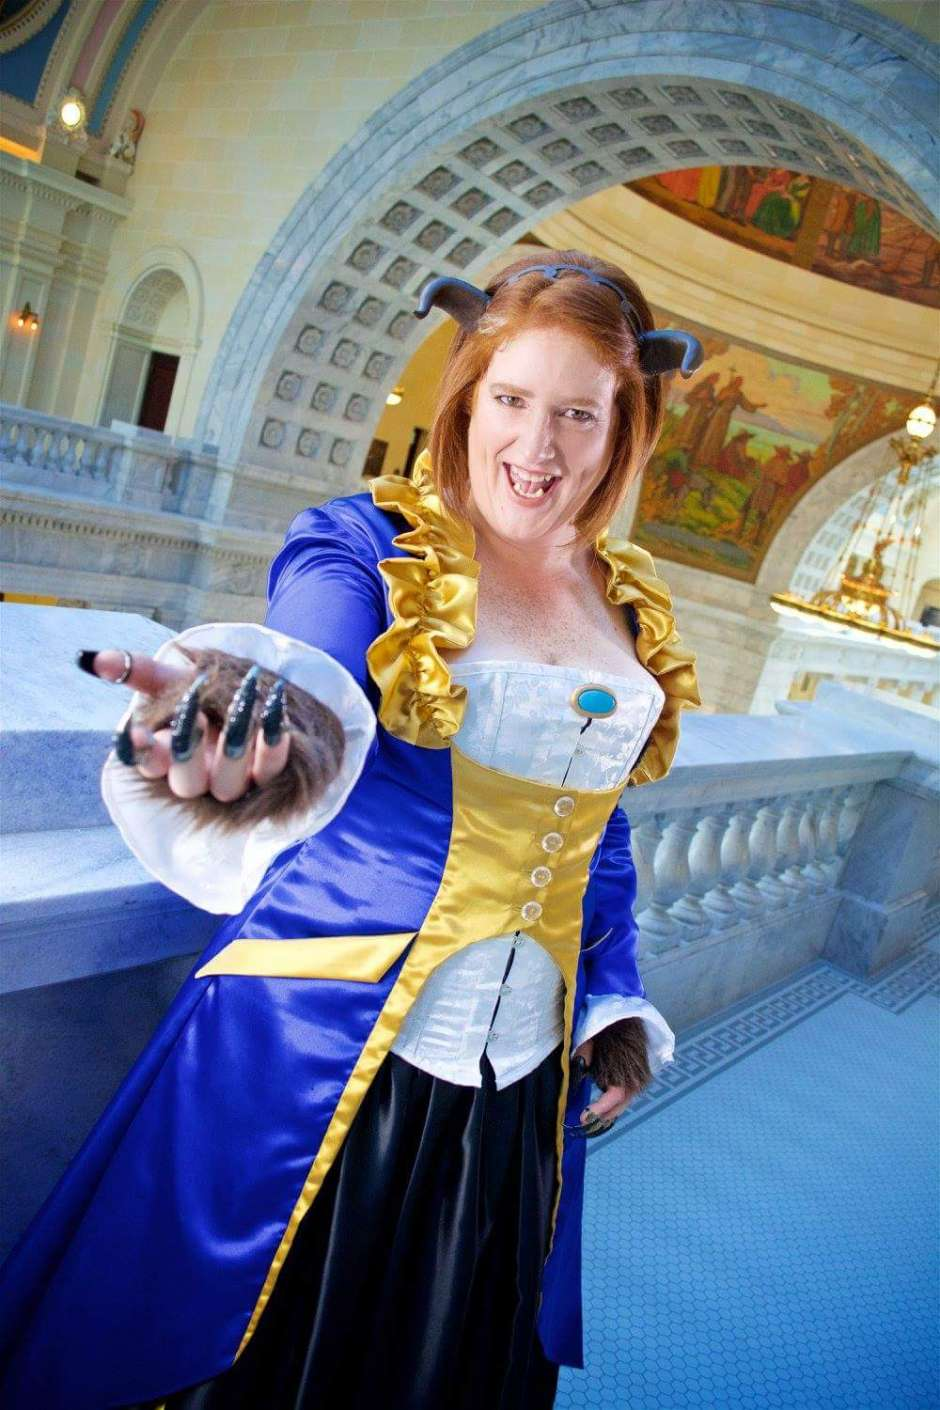 Lady Beast Beauty and the Beast Gender Bend Costume